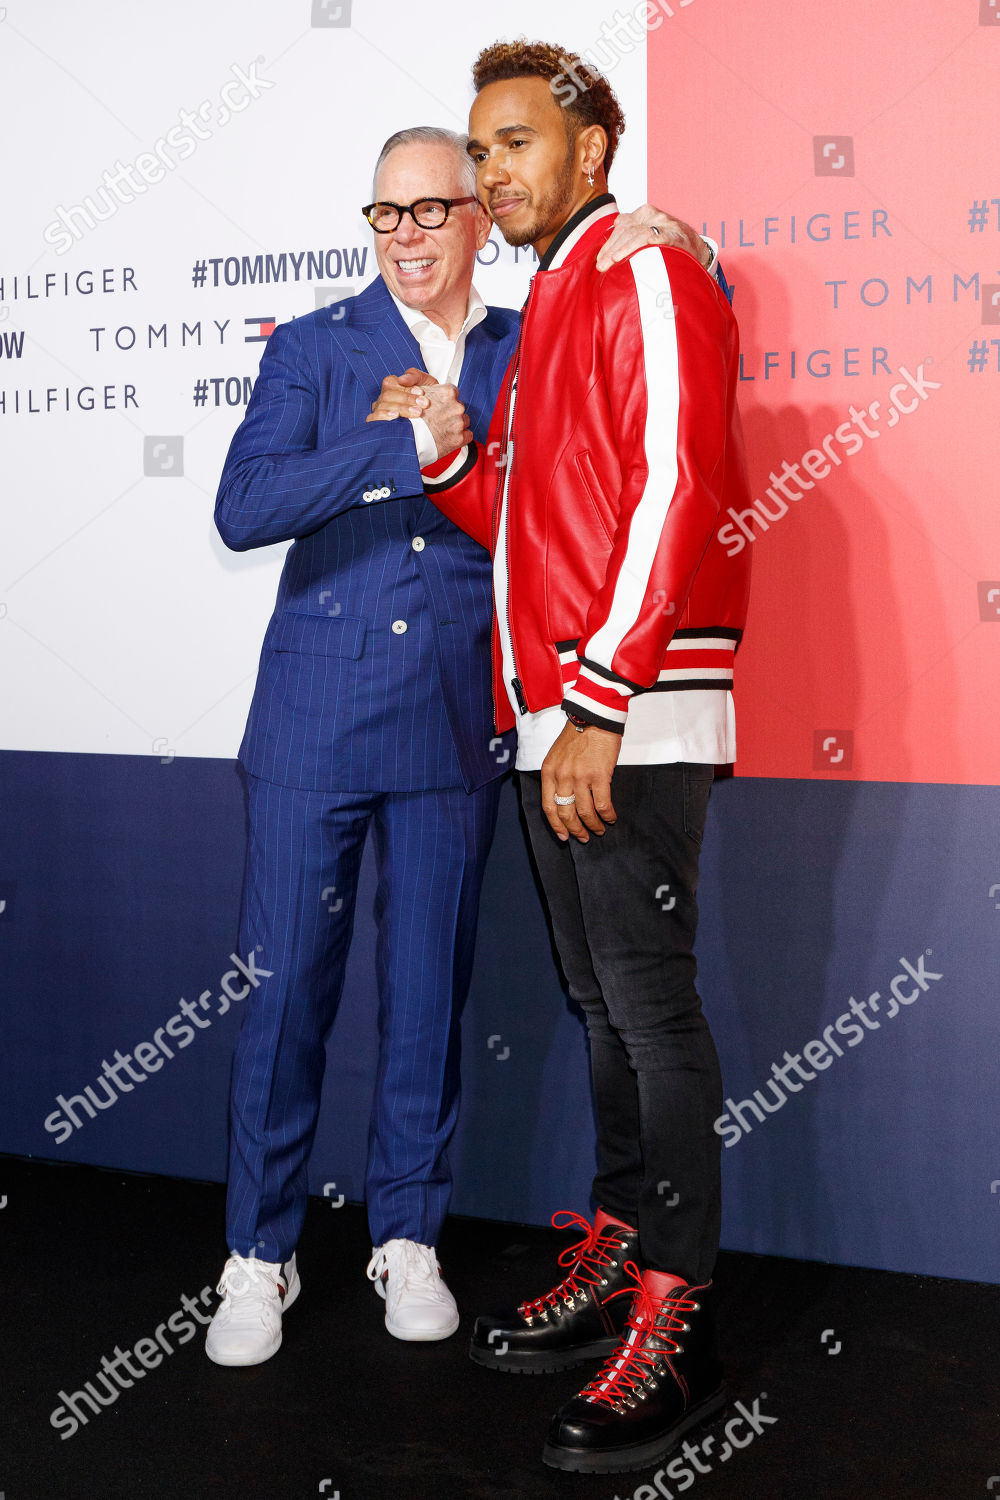 7382d53d 'Tommy Hilfiger presents Tokyo Icons', Japan Stock Image by Aflo for  editorial use, Oct 8, 2018